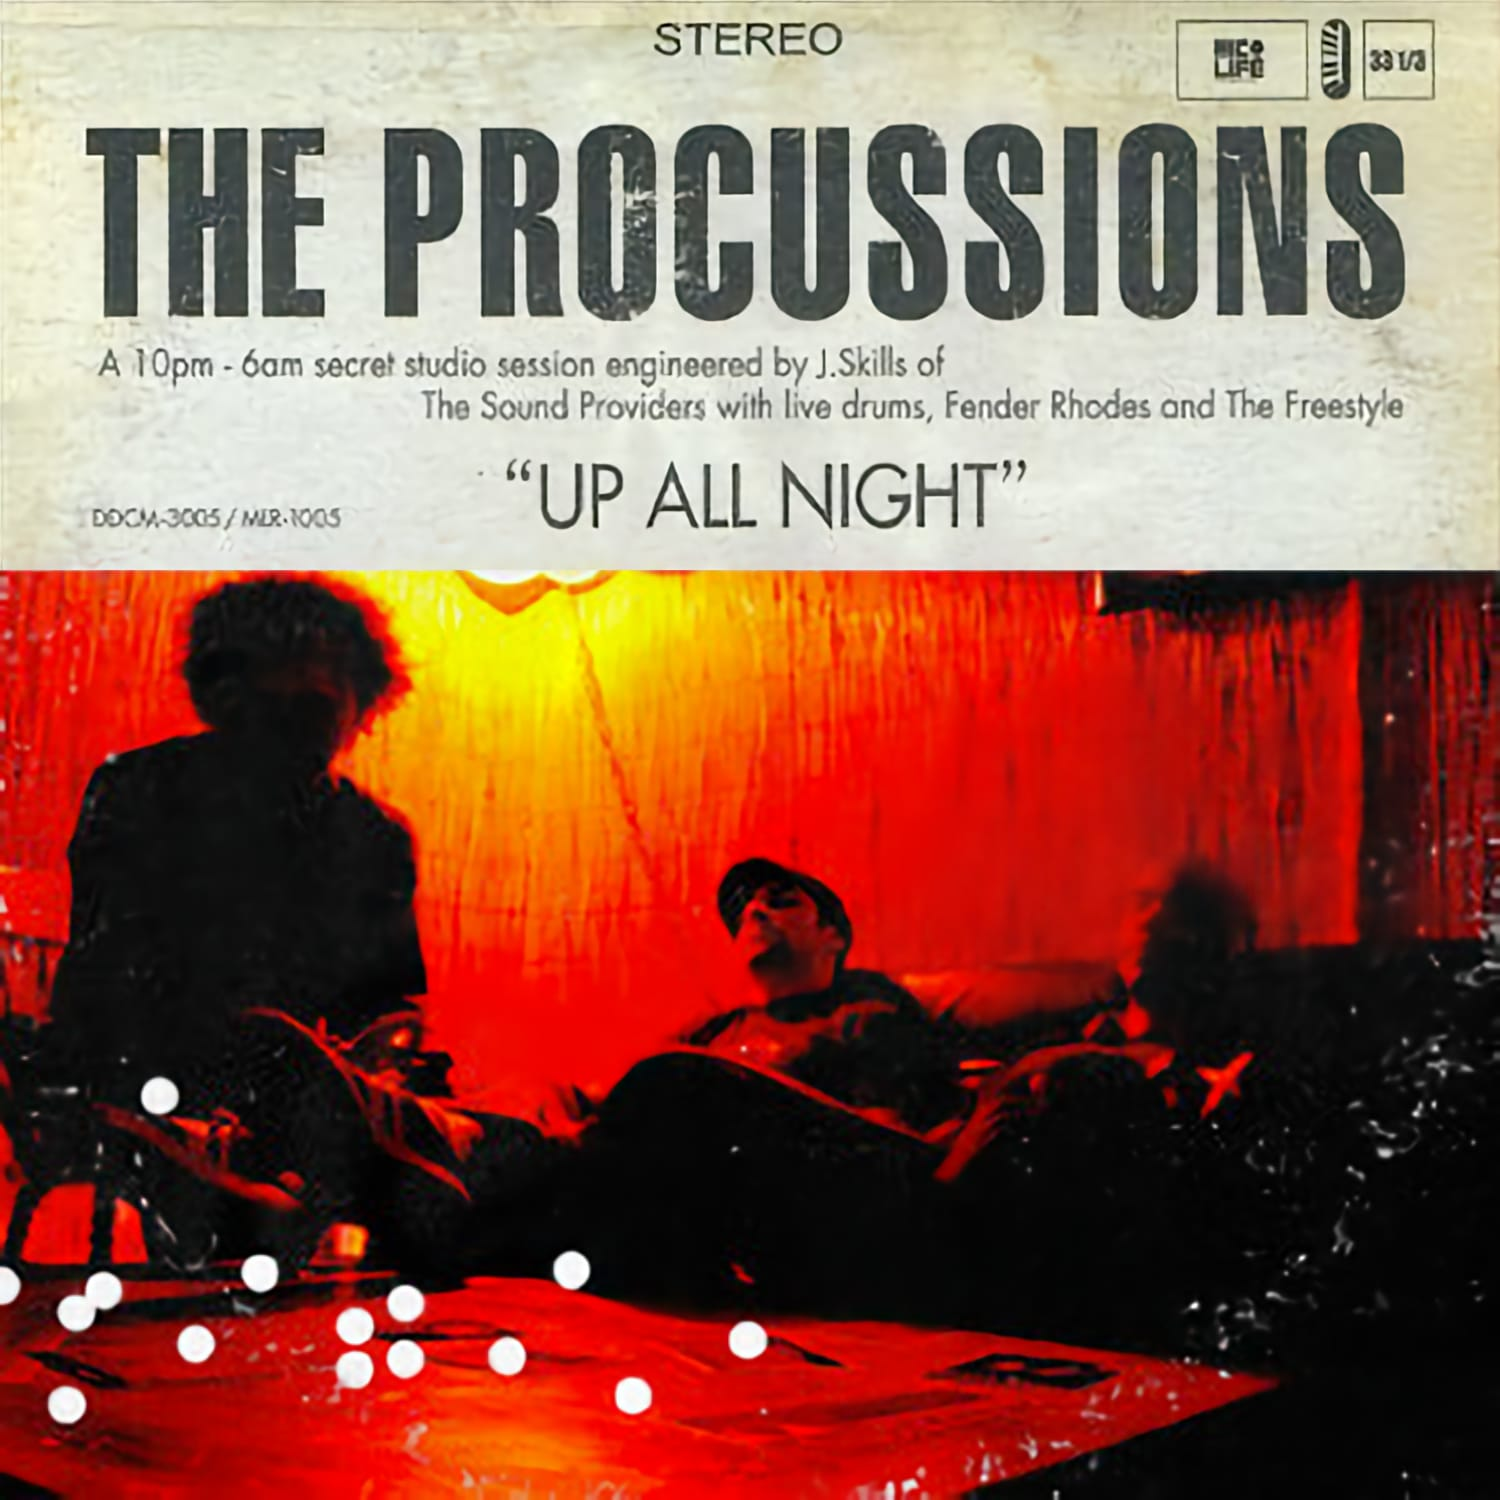 The Procussions - Up All Night